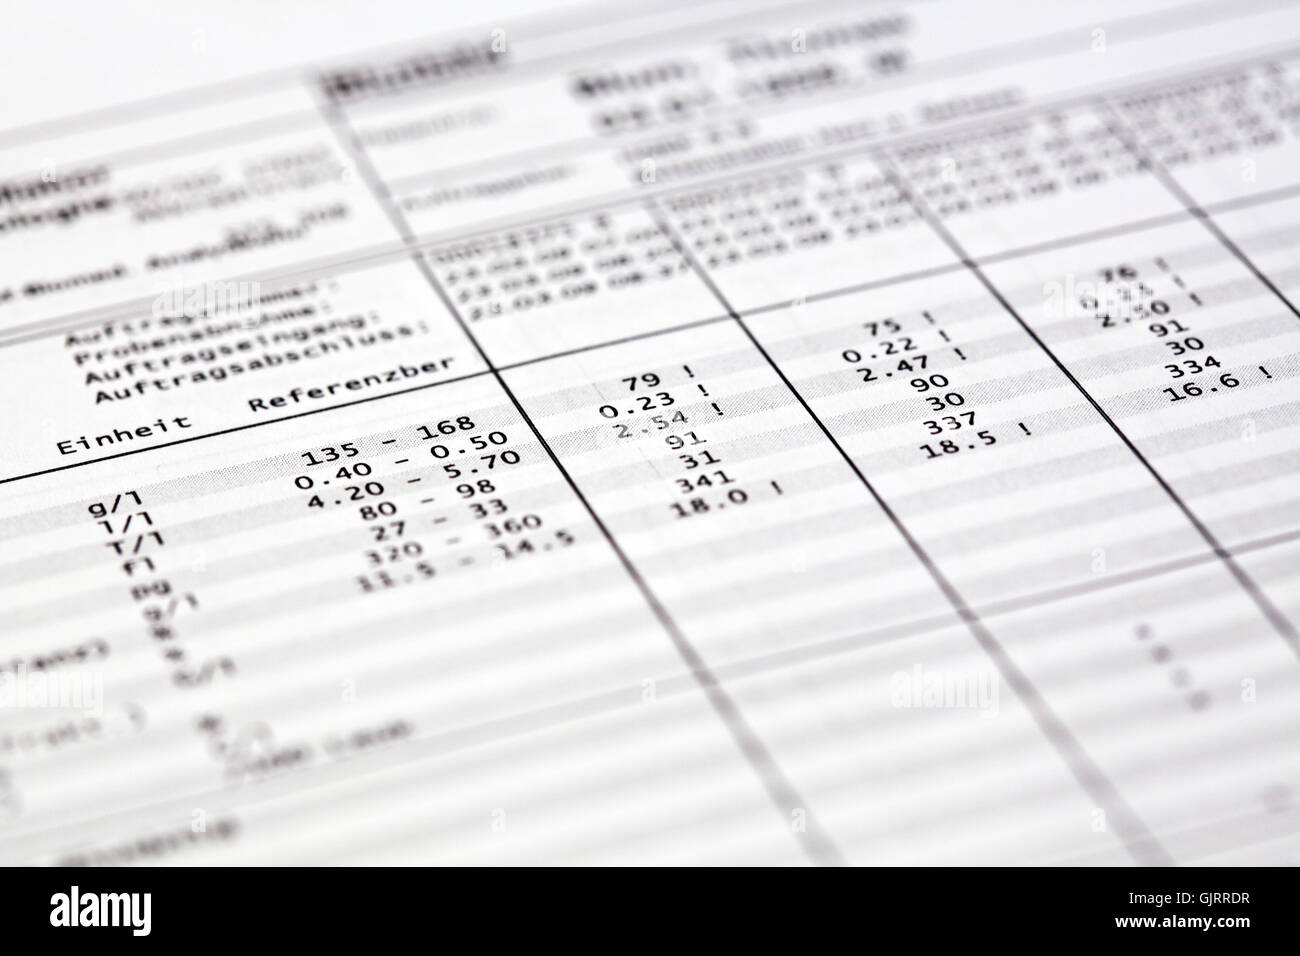 laboratory values - Stock Image